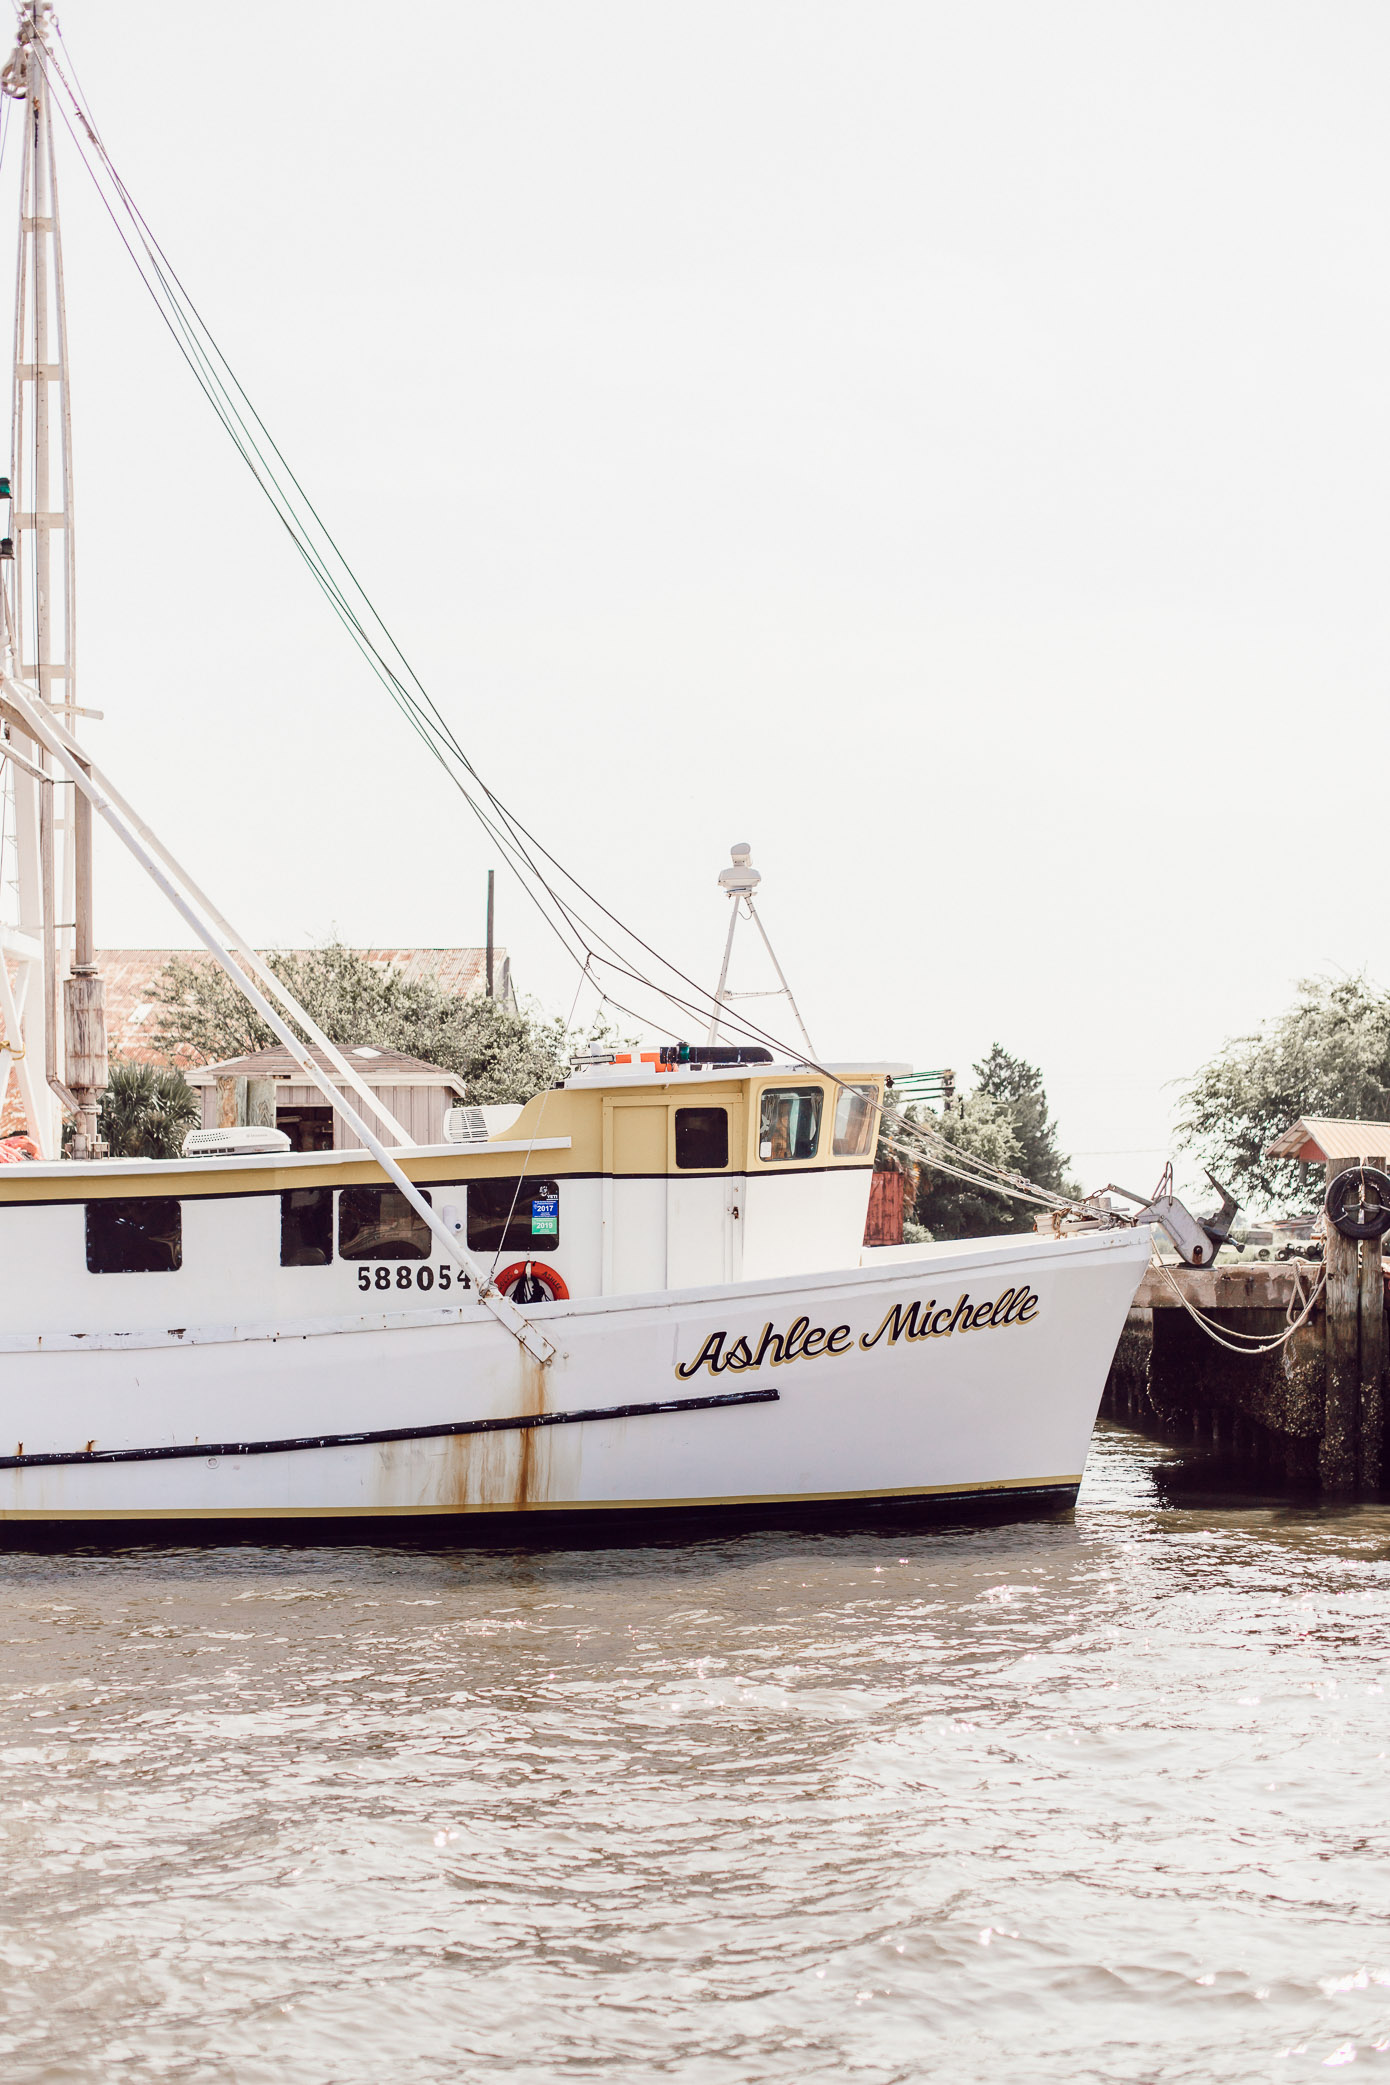 Things to do in Amelia Island   Shrimp Eco Tour, Family Activities   Amelia Island Travel Guide   Louella Reese